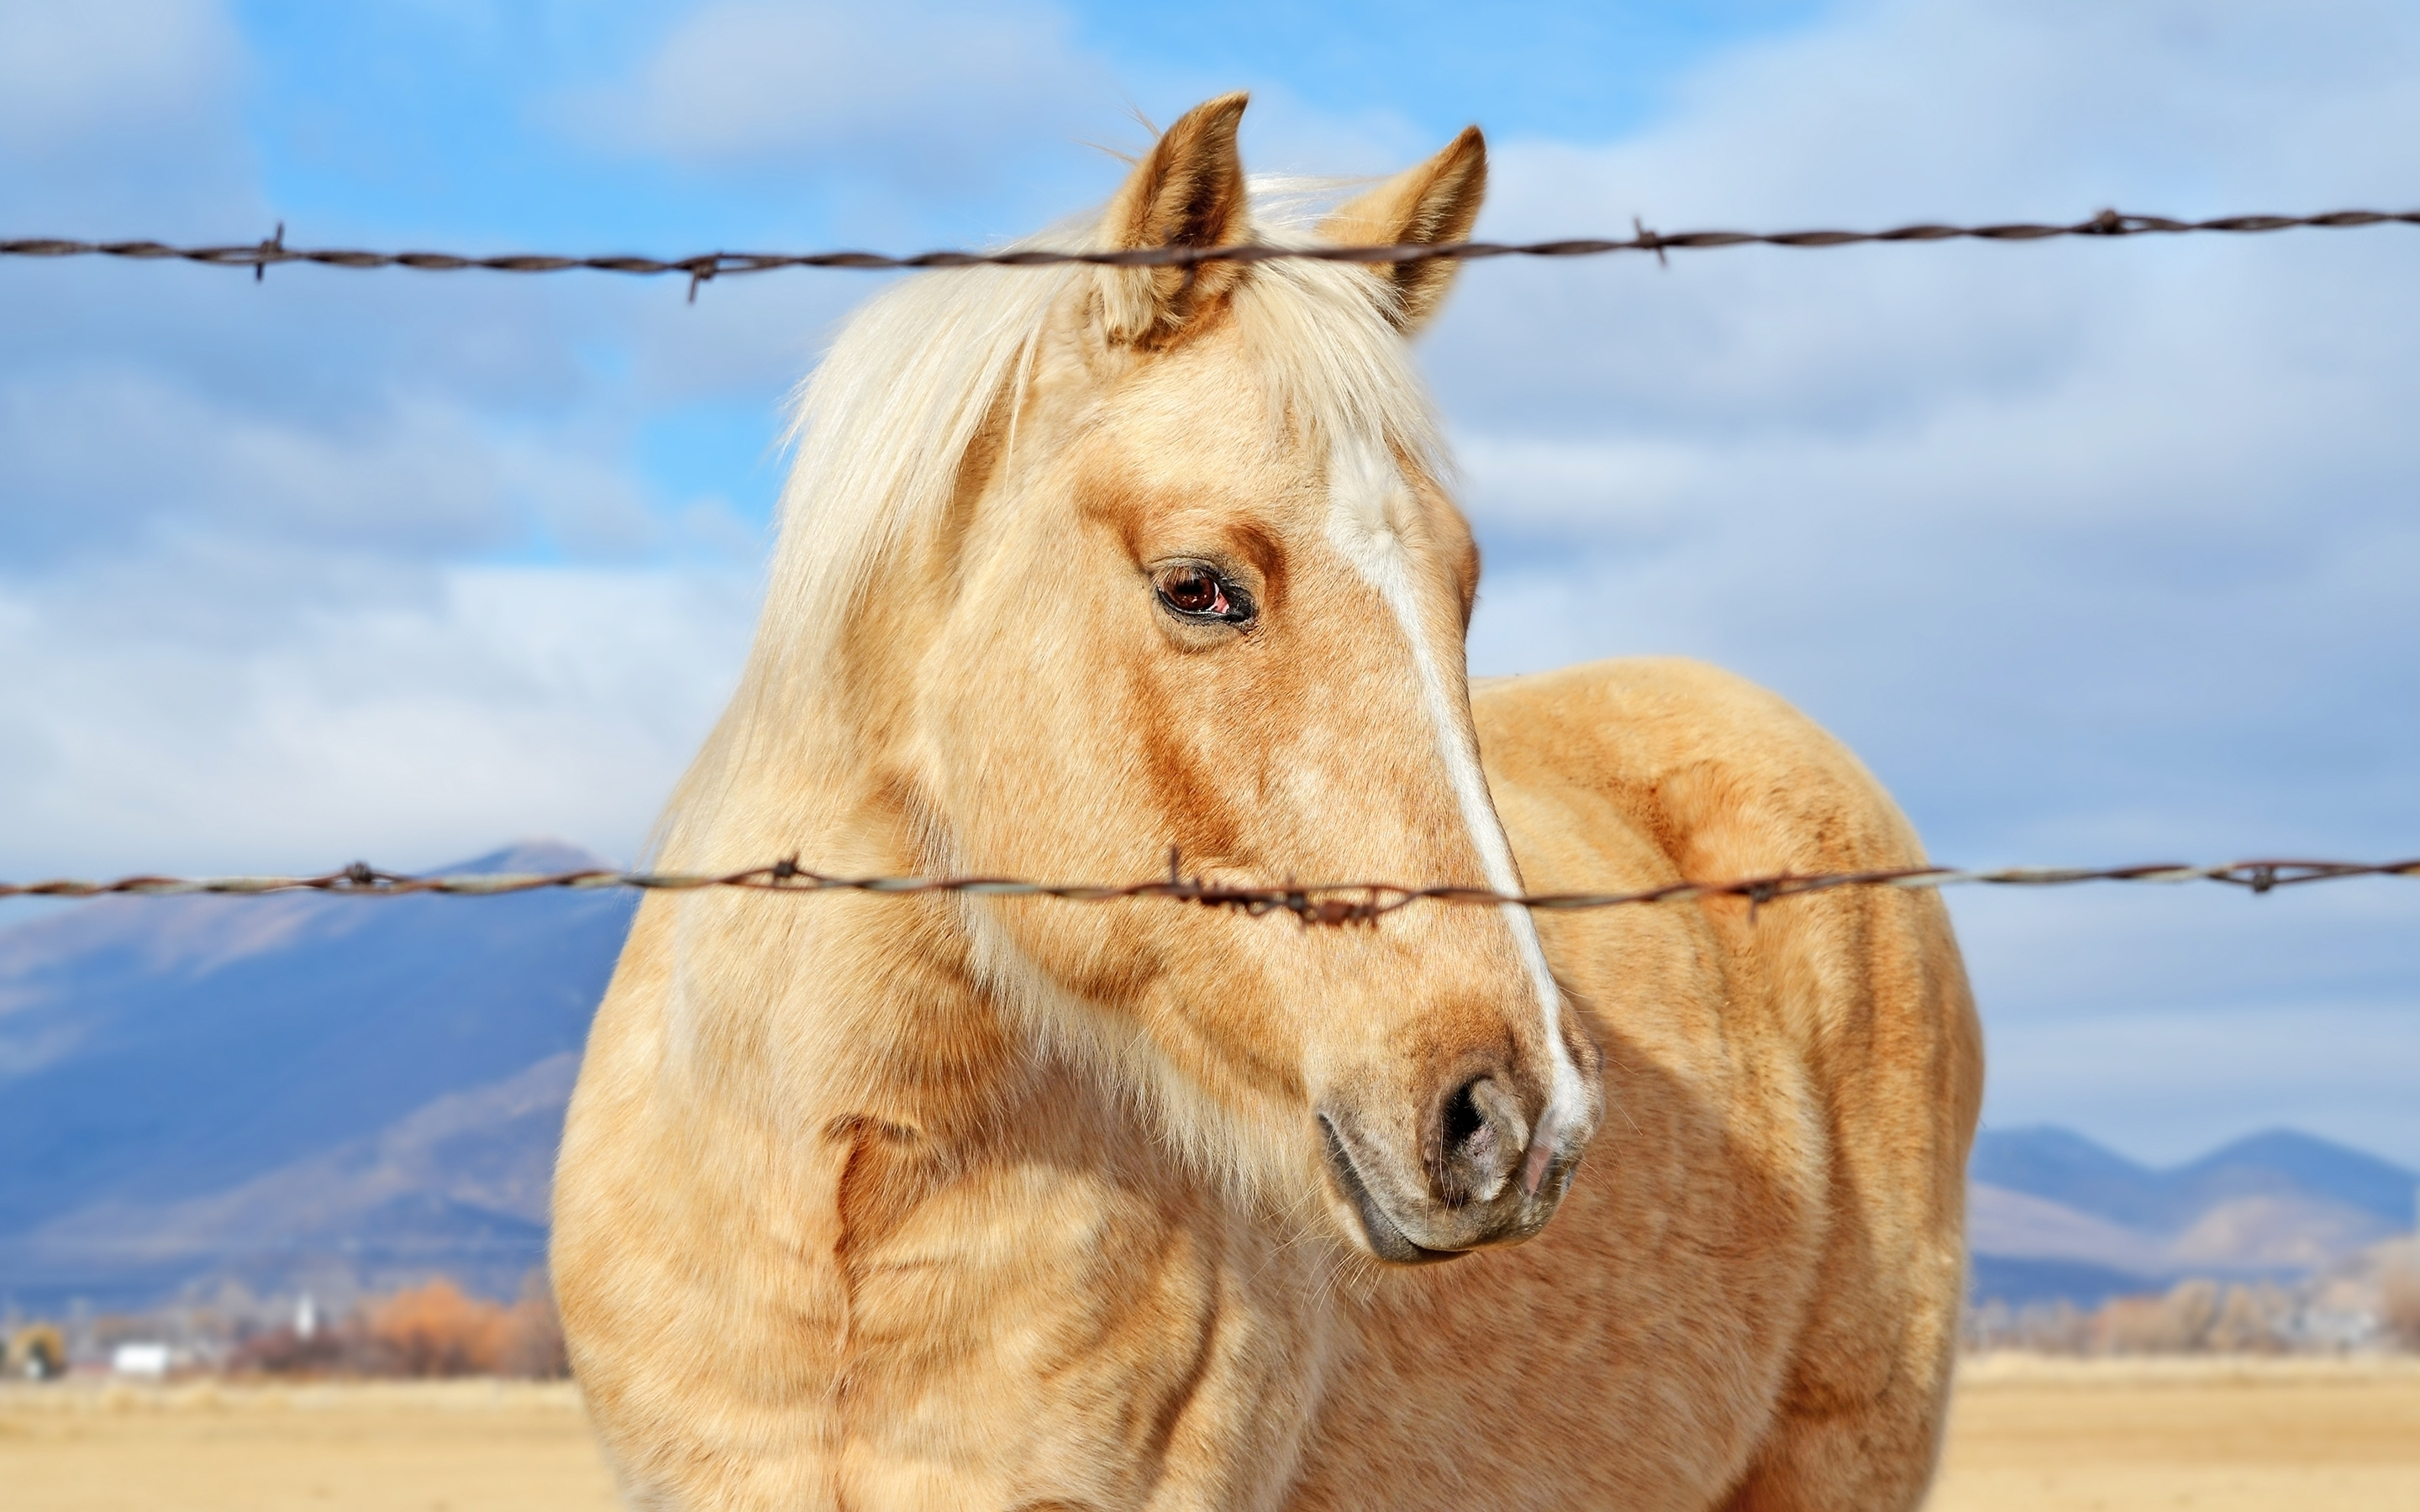 Horse 4k Wallpapers For Your Desktop Or Mobile Screen Free And Easy To Download